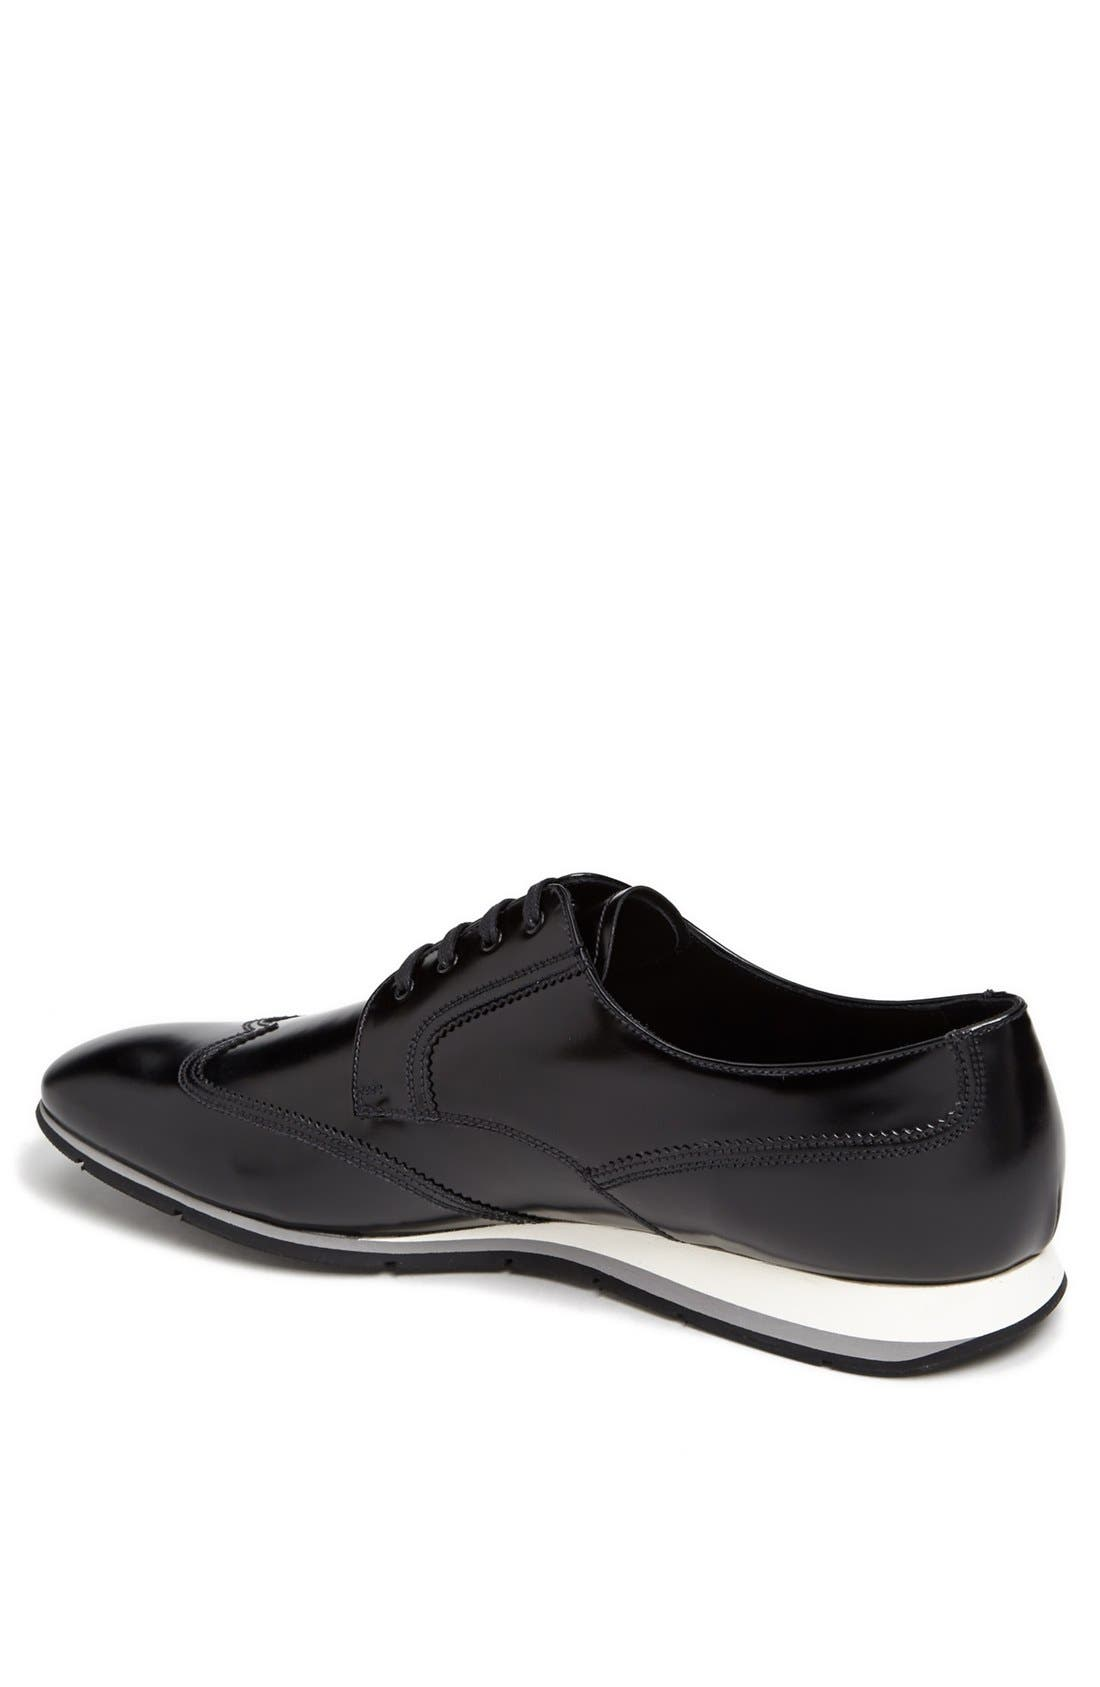 Wingtip Oxford,                             Alternate thumbnail 3, color,                             001